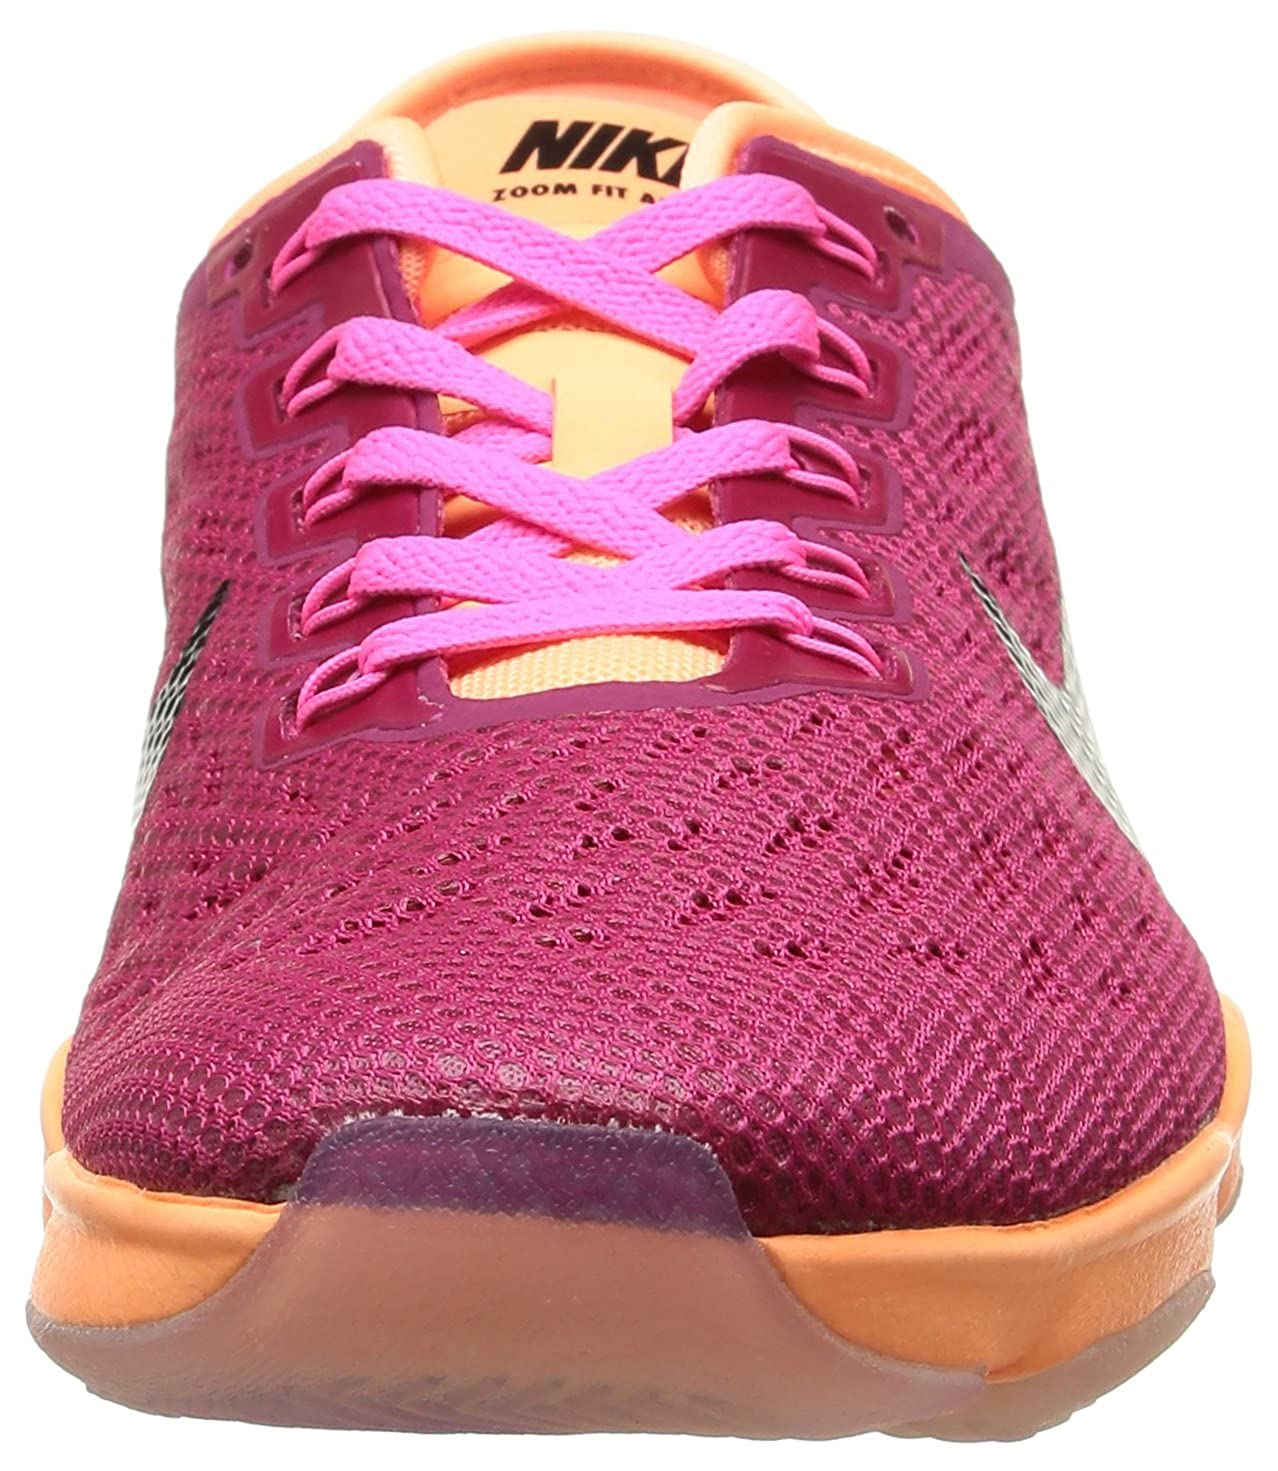 separation shoes 5ccc5 beba2 Amazon.com   Nike Women s Zoom Fit Agility Running Shoe   Road Running